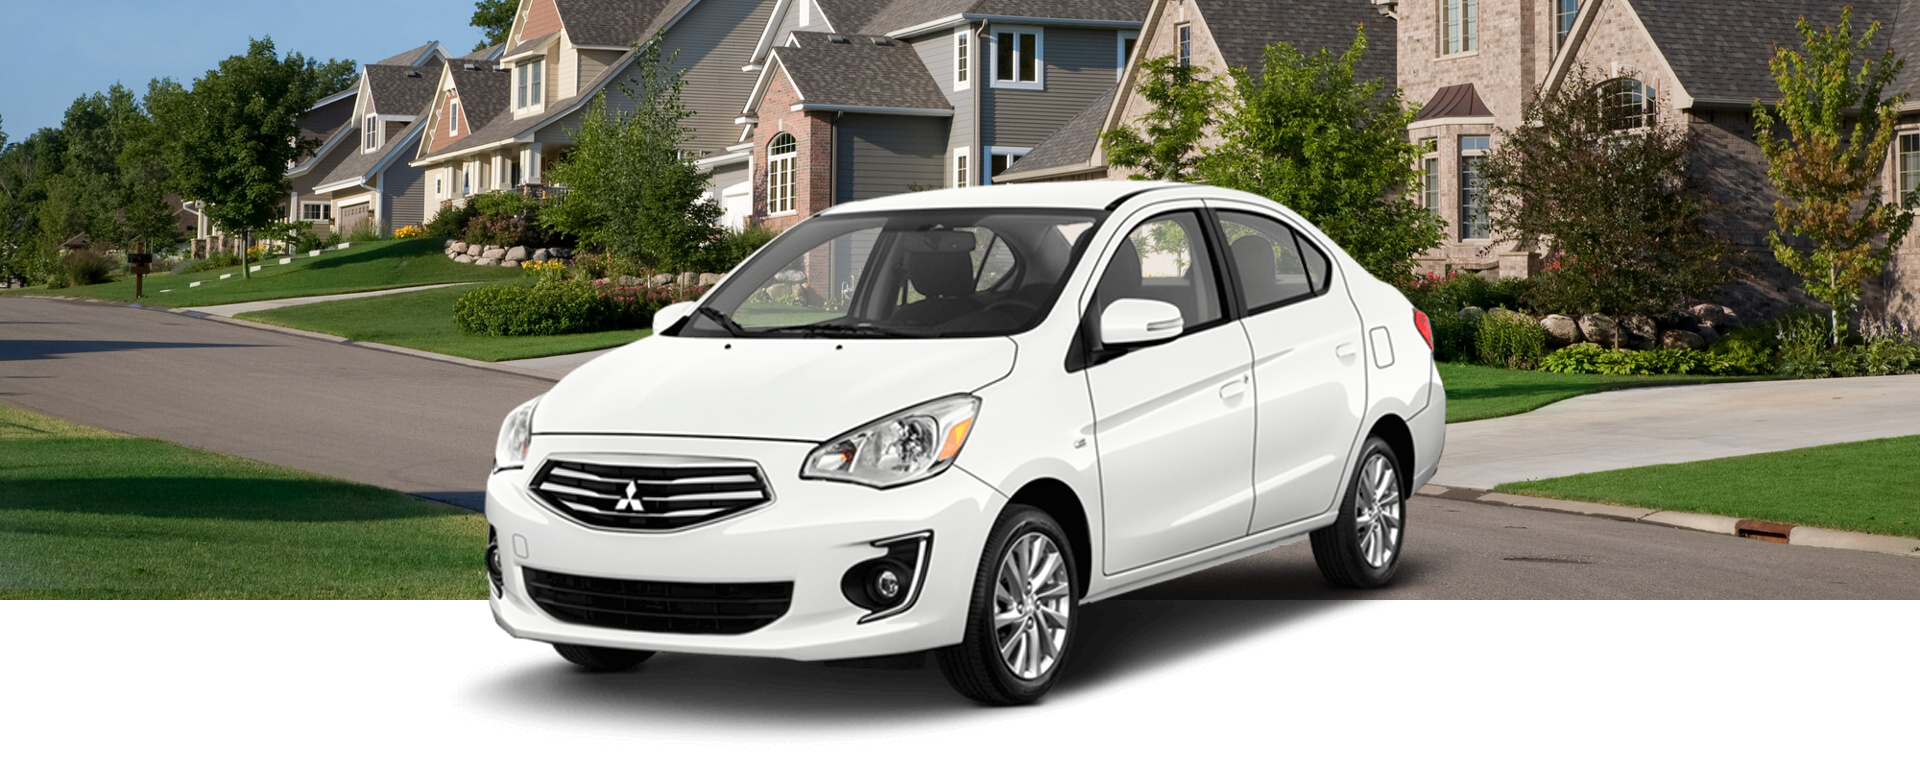 2018 Mitsubishi Mirage G4 MLP with background